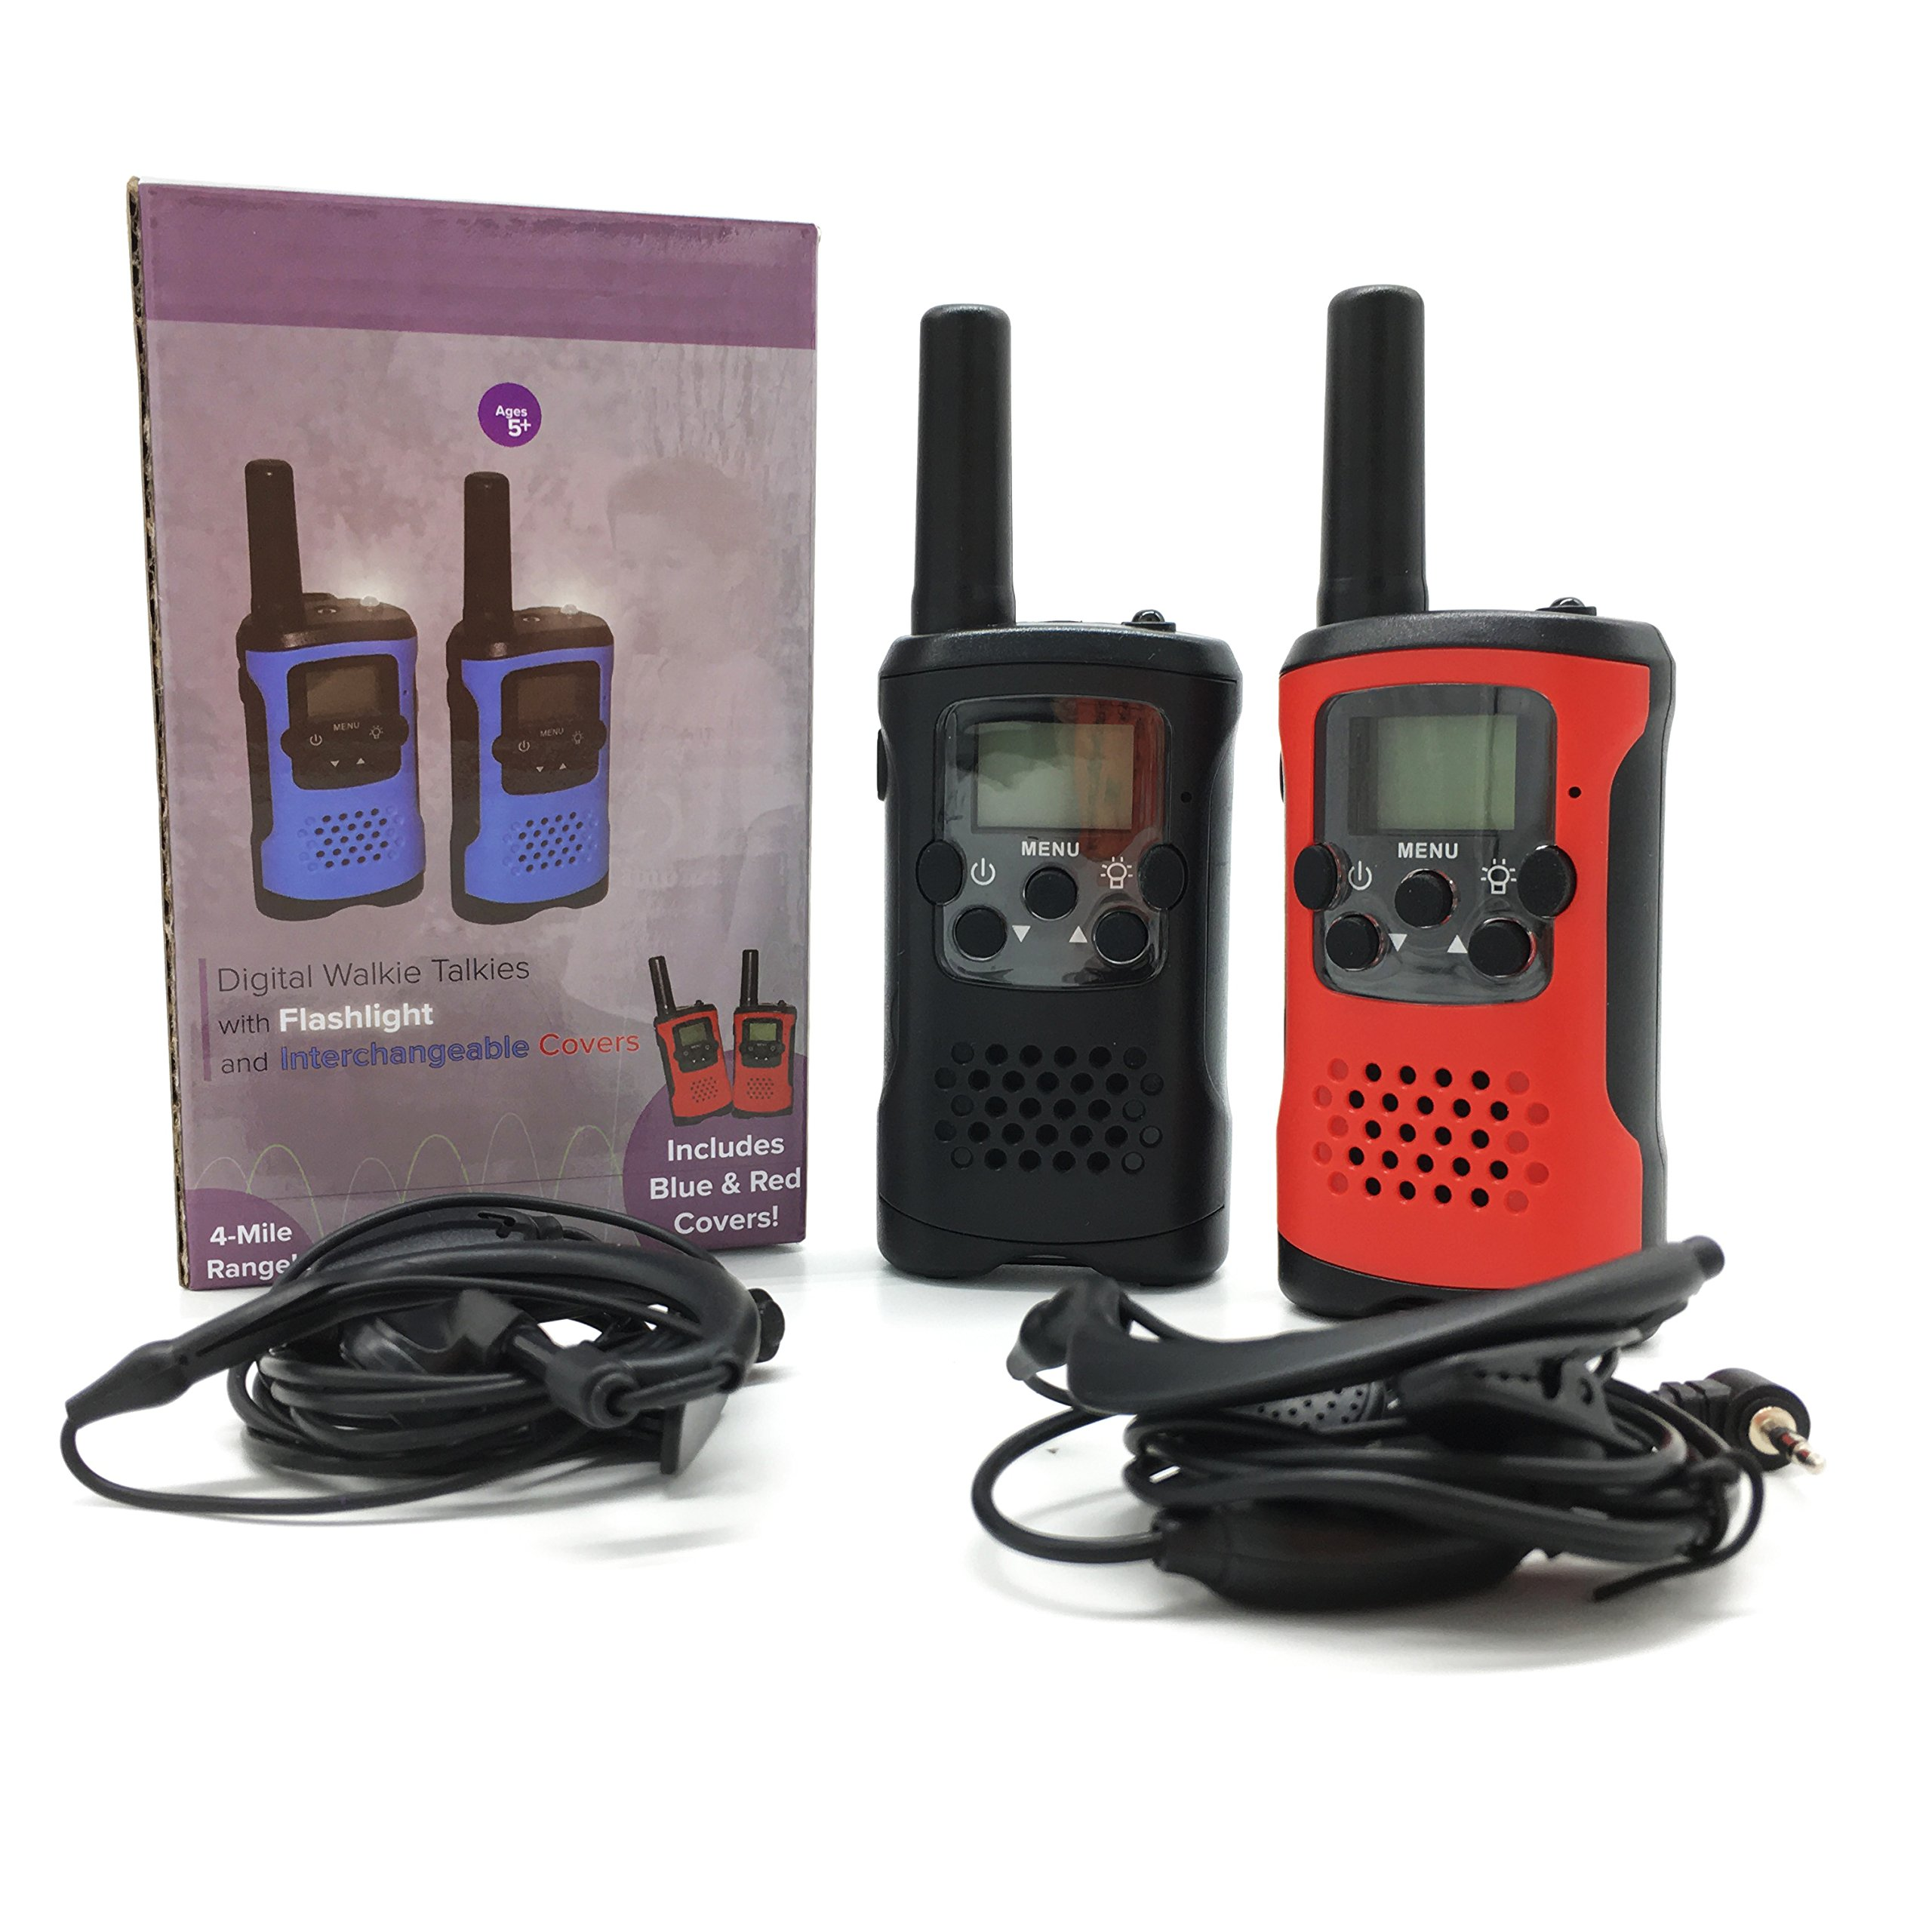 AMENON 2 Pack Walkie Talkies for Kids 22 Channel 2 Way Radio 3 Miles Long (Up to 5Miles) FRS/GMRS Handheld Mini Radio Toy for Boys Girls Outdoor Camping Hiking Birthday Christmas by AMENON (Image #7)